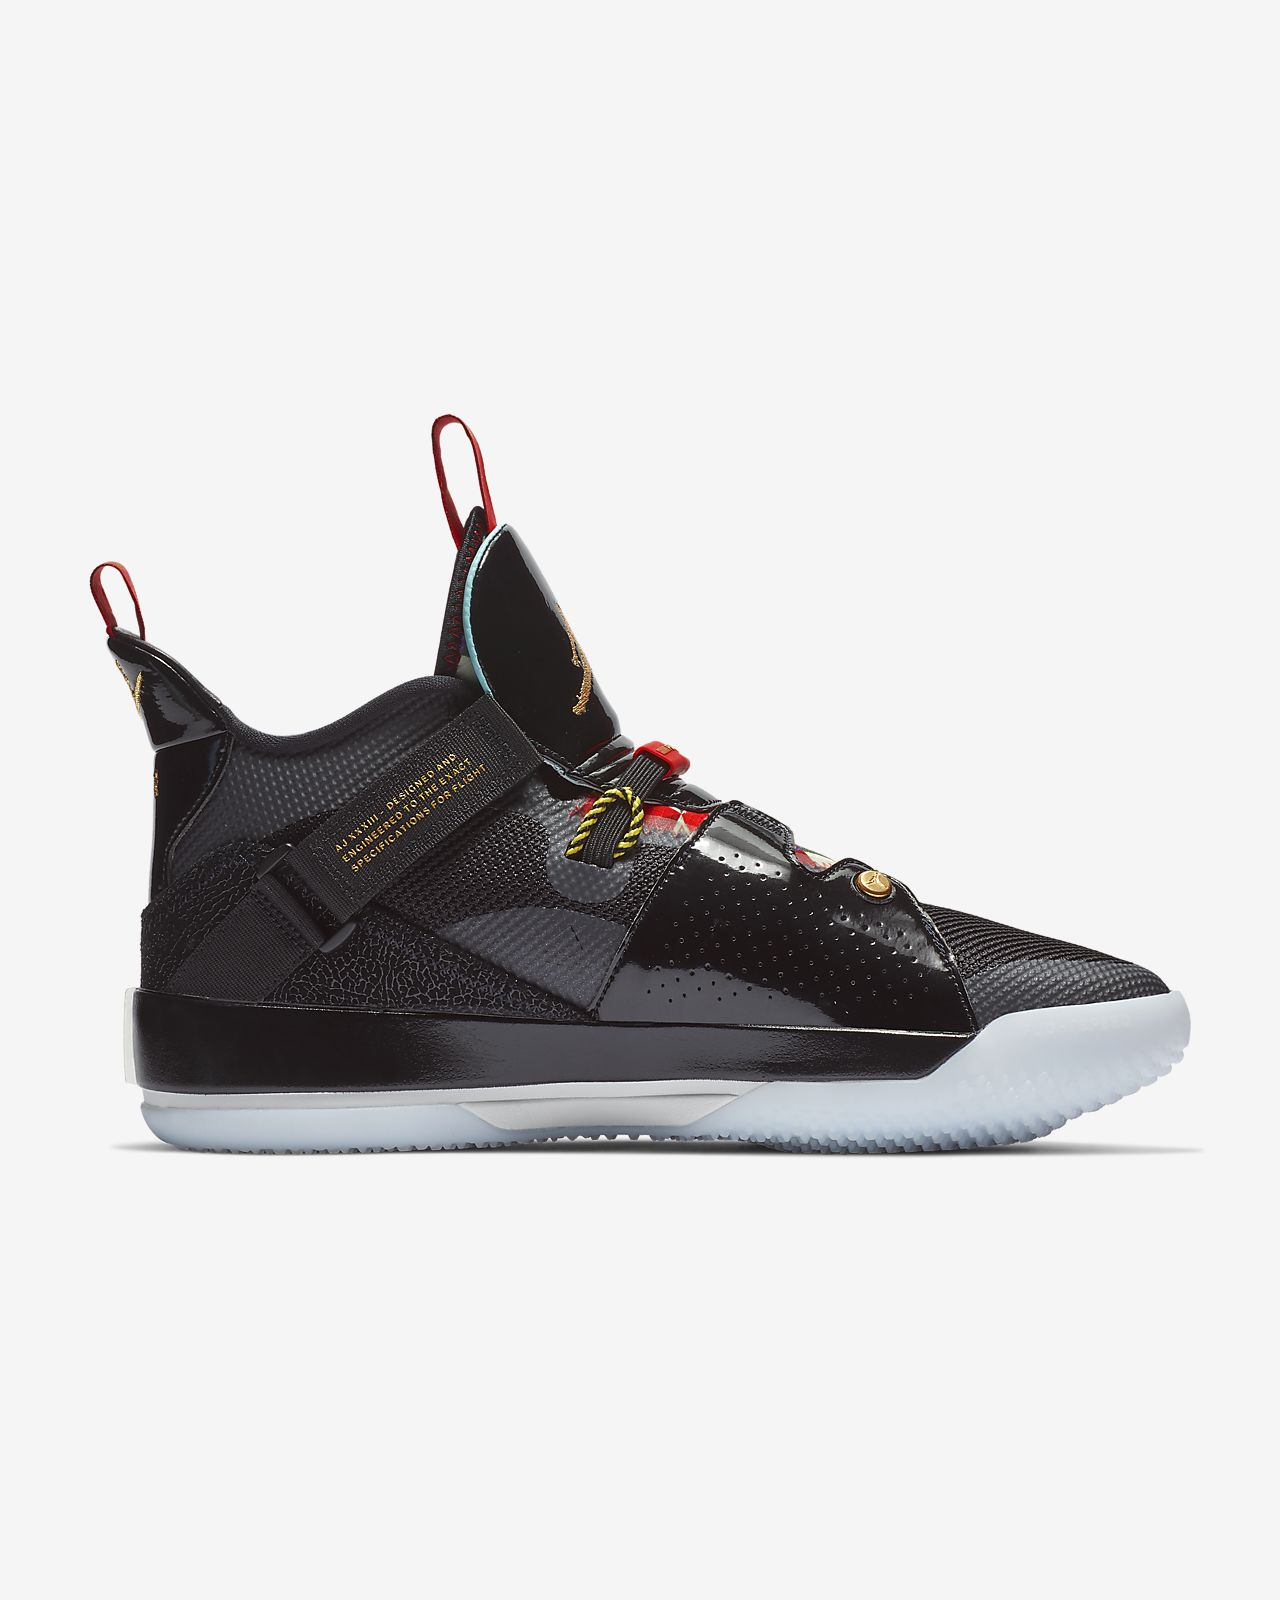 9ab73cc4ac9 Low Resolution Air Jordan XXXIII Basketball Shoe Air Jordan XXXIII  Basketball Shoe